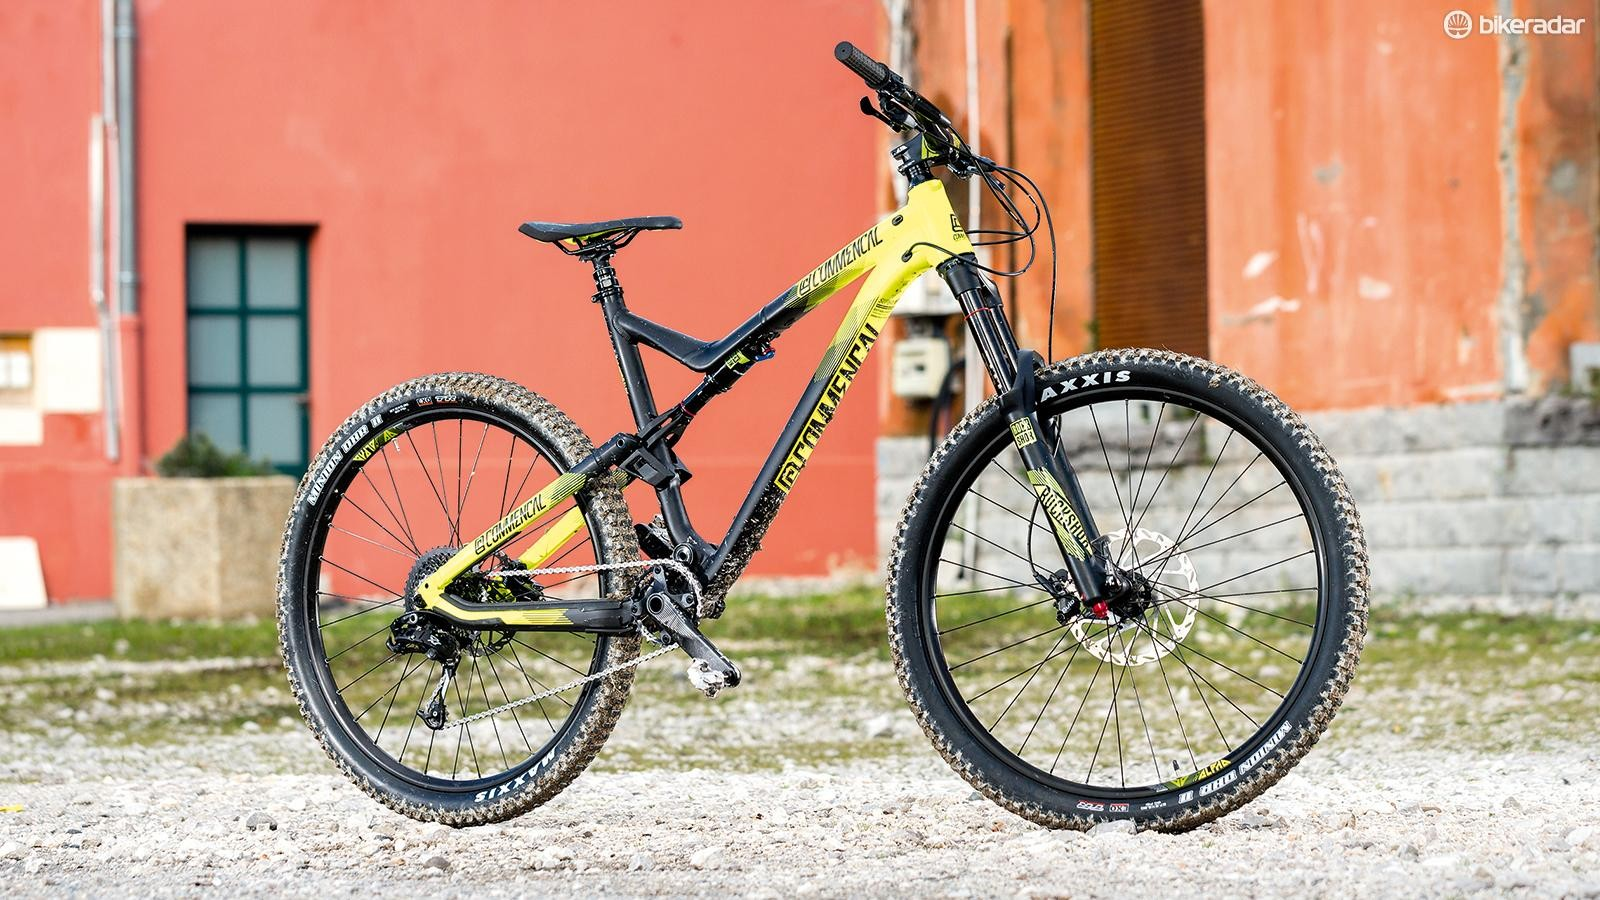 Commencal's Meta AM Origin is anything but stealthy